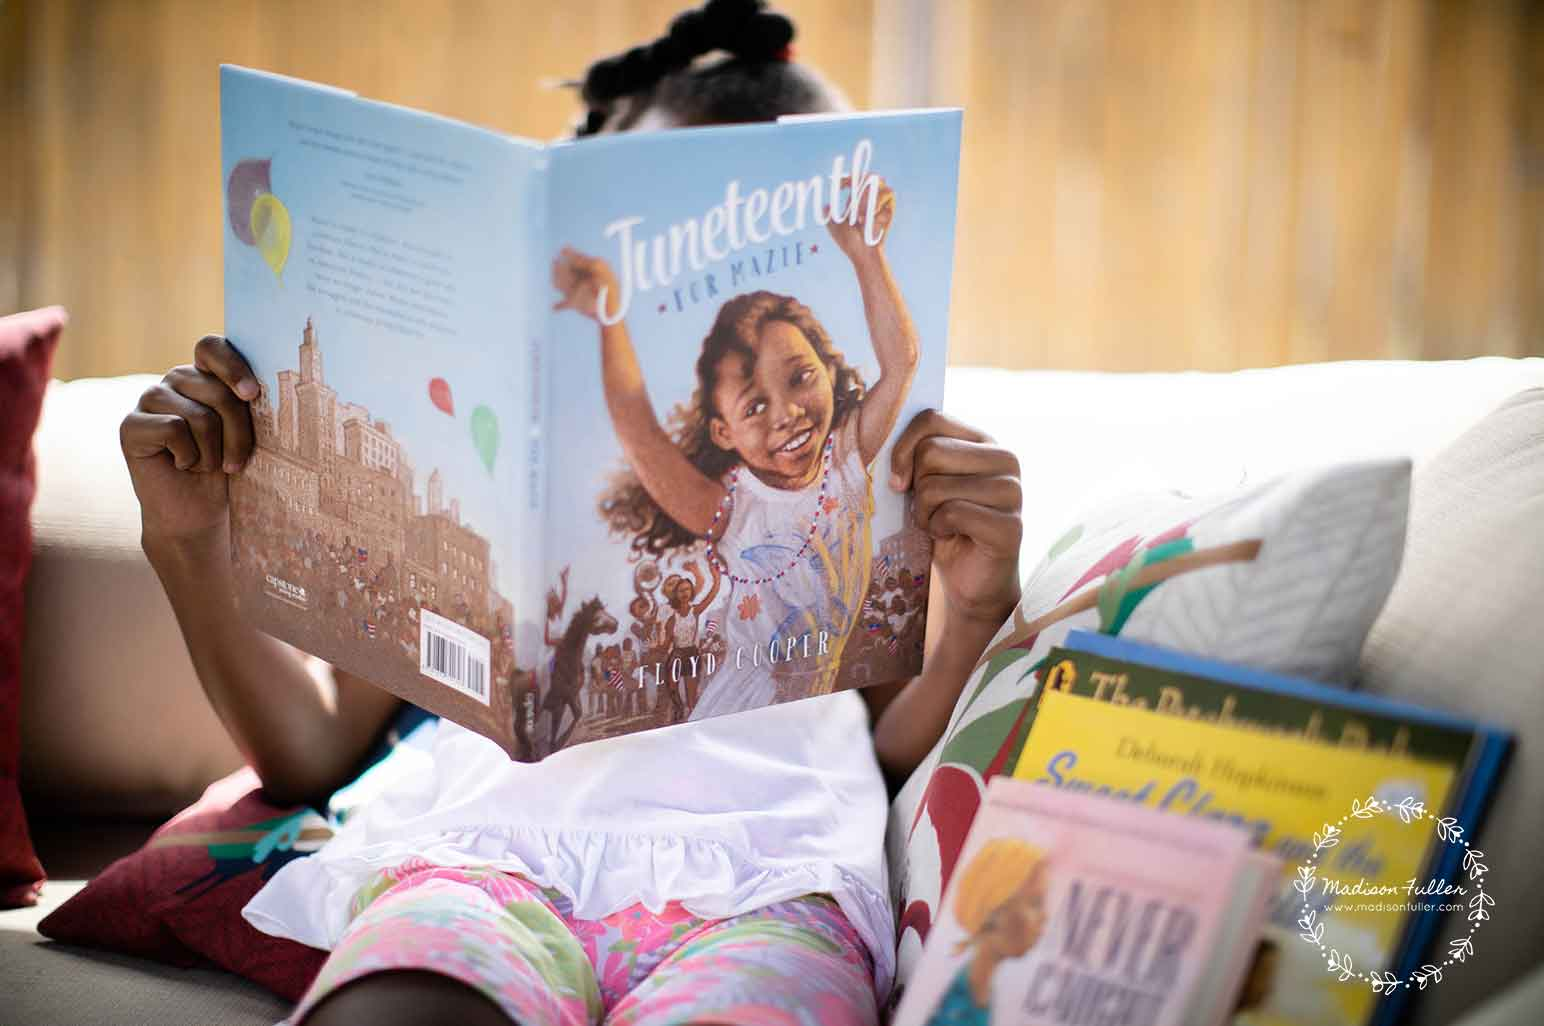 Juneteenth Books for Kids